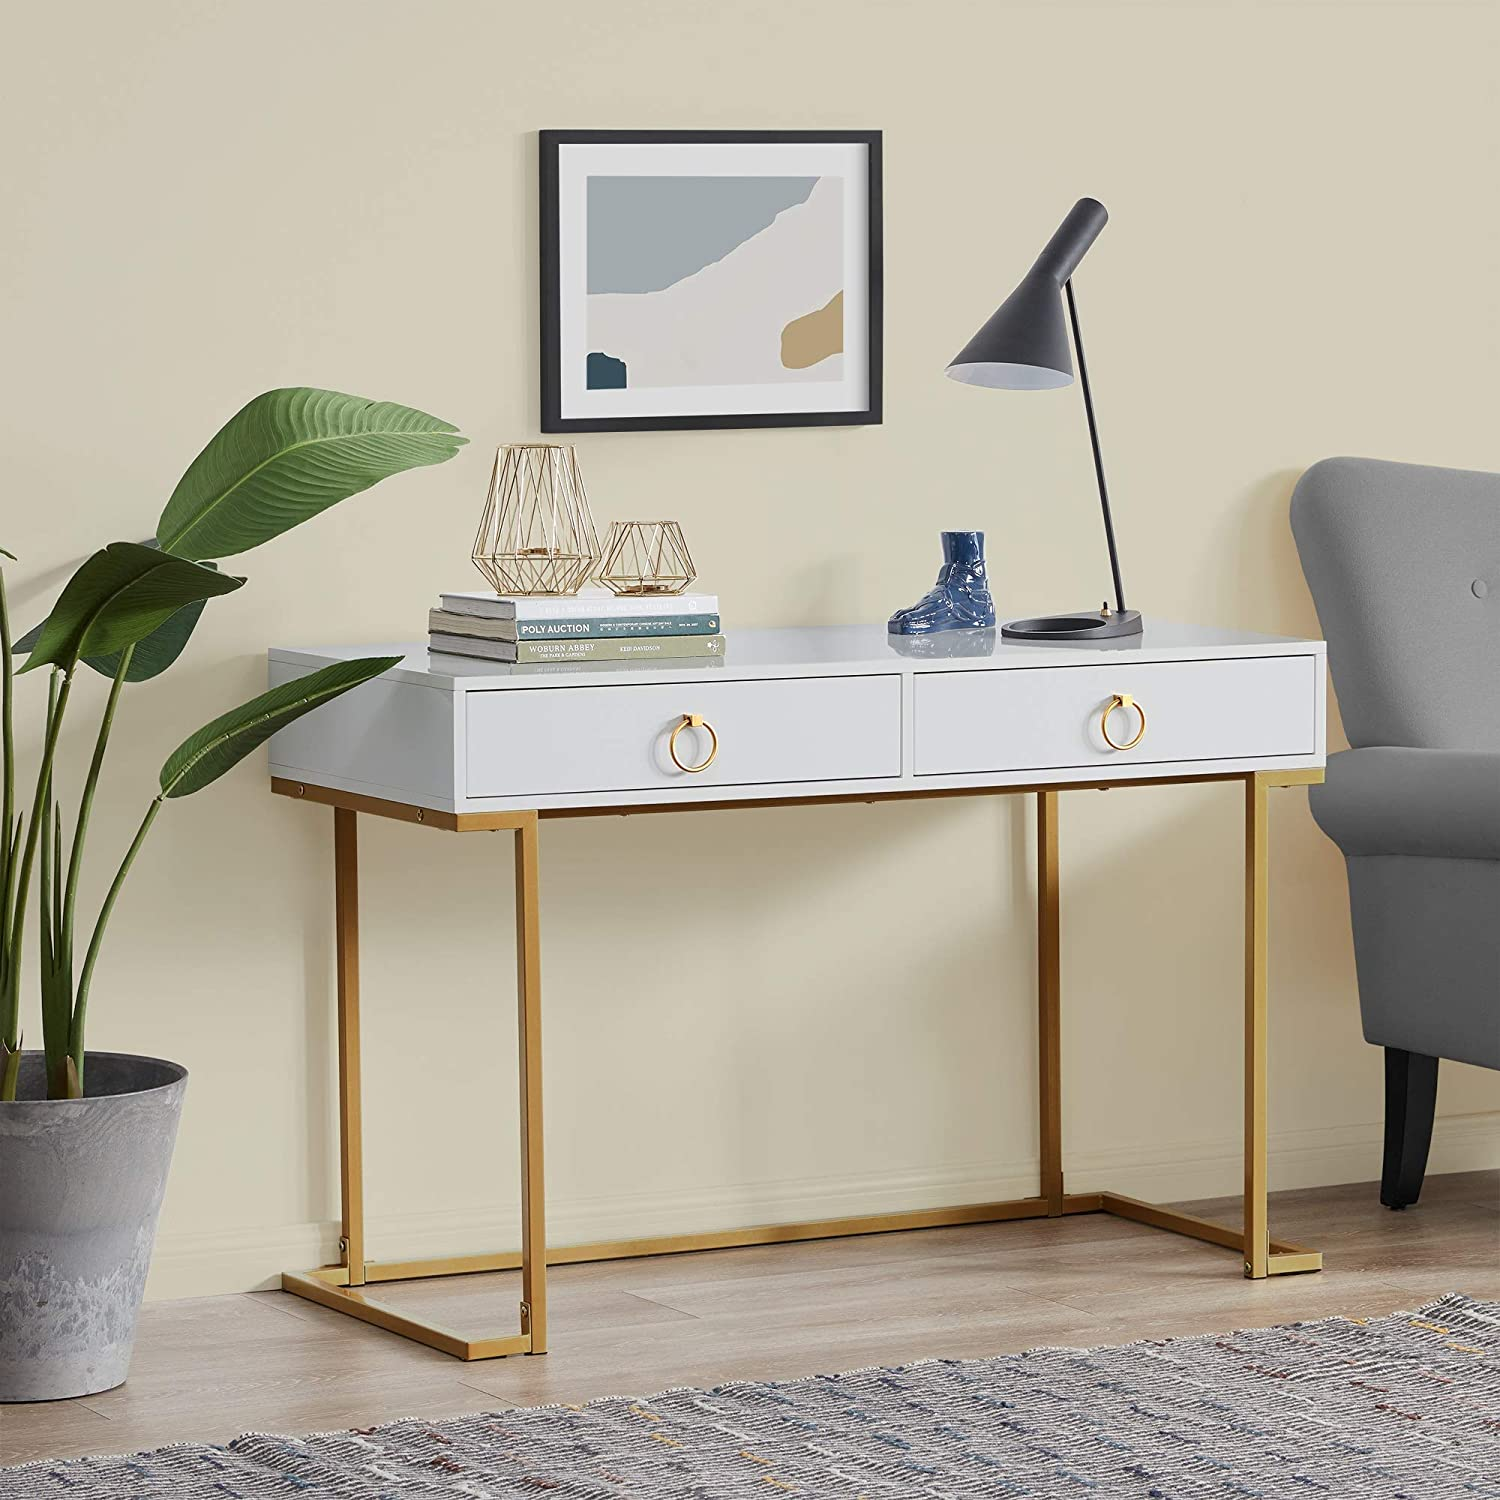 BELLEZE Two-Drawer Home Office Computer Desk Vanity Table, Wood and Metal, White & Gold